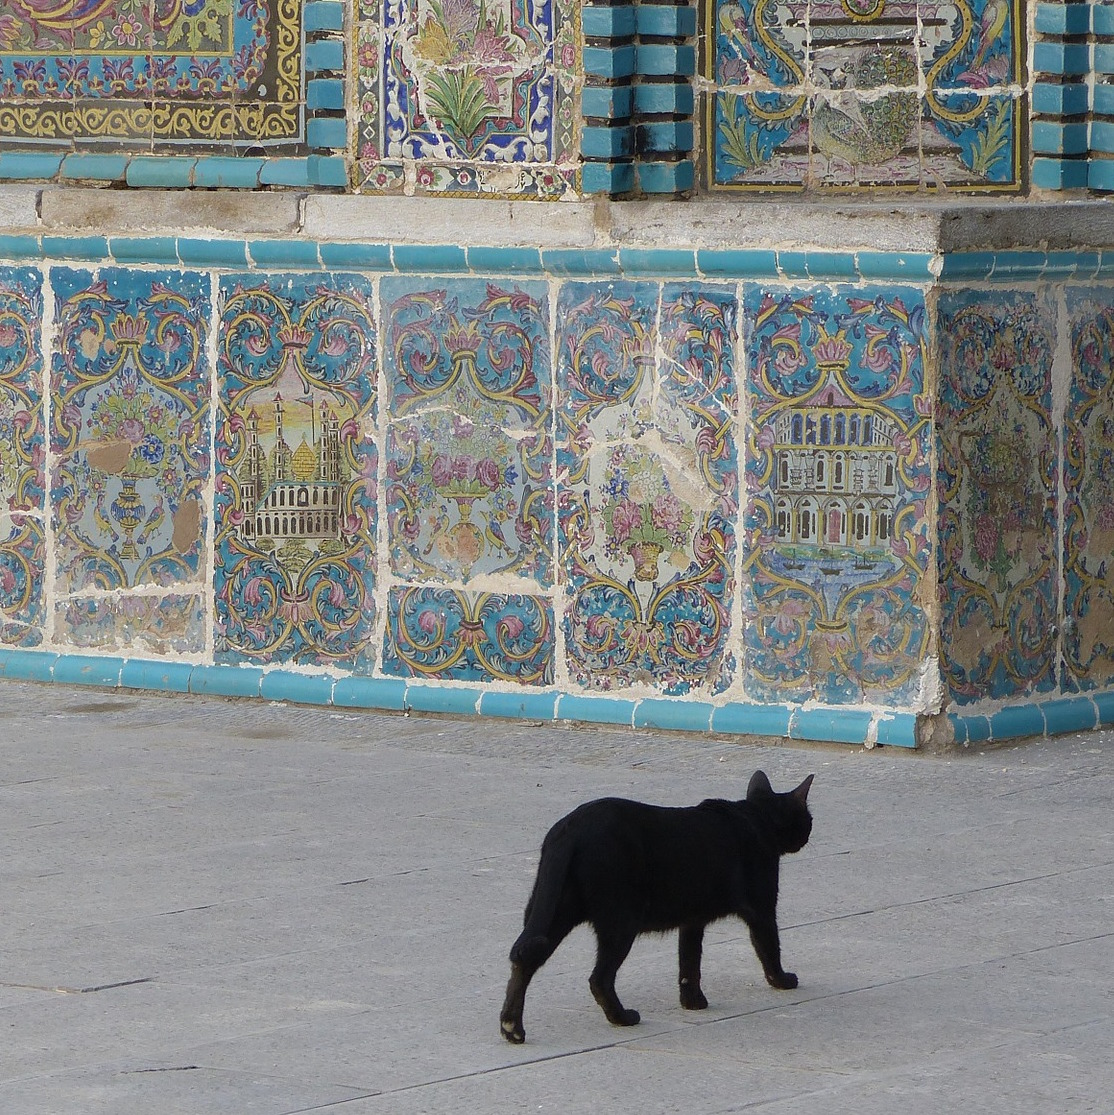 coursera01w02/images/cat_in_iran.jpg